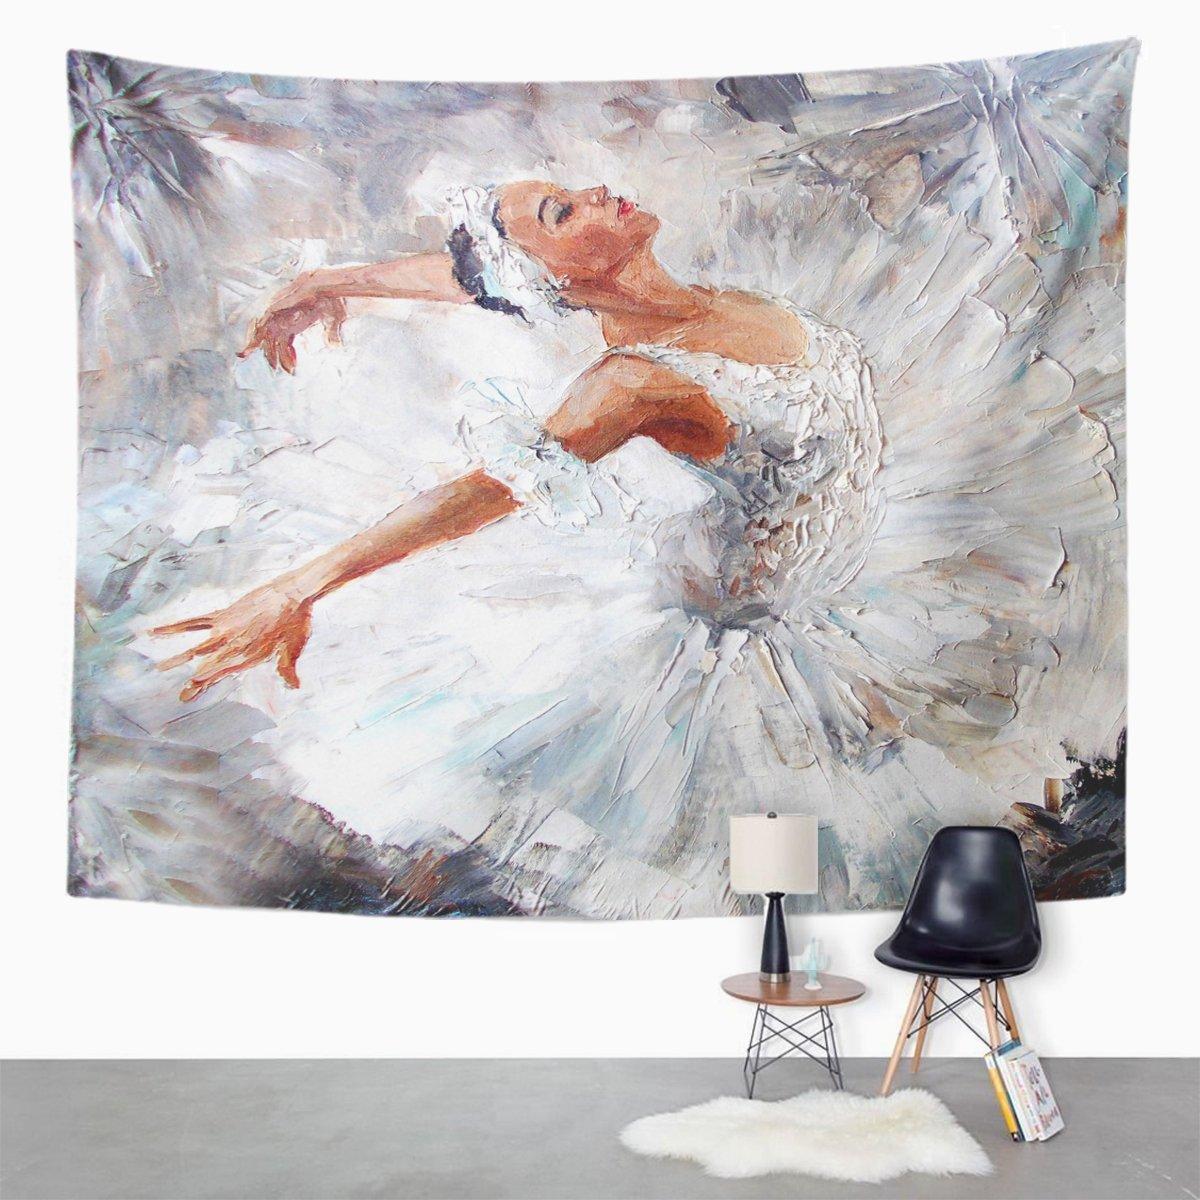 TOMPOP Tapestry Gray Ballet Oil Painting Girl Ballerina Drawn Cute Dancing Home Decor Wall Hanging for Living Room Bedroom Dorm 50x60 Inches by TOMPOP (Image #2)